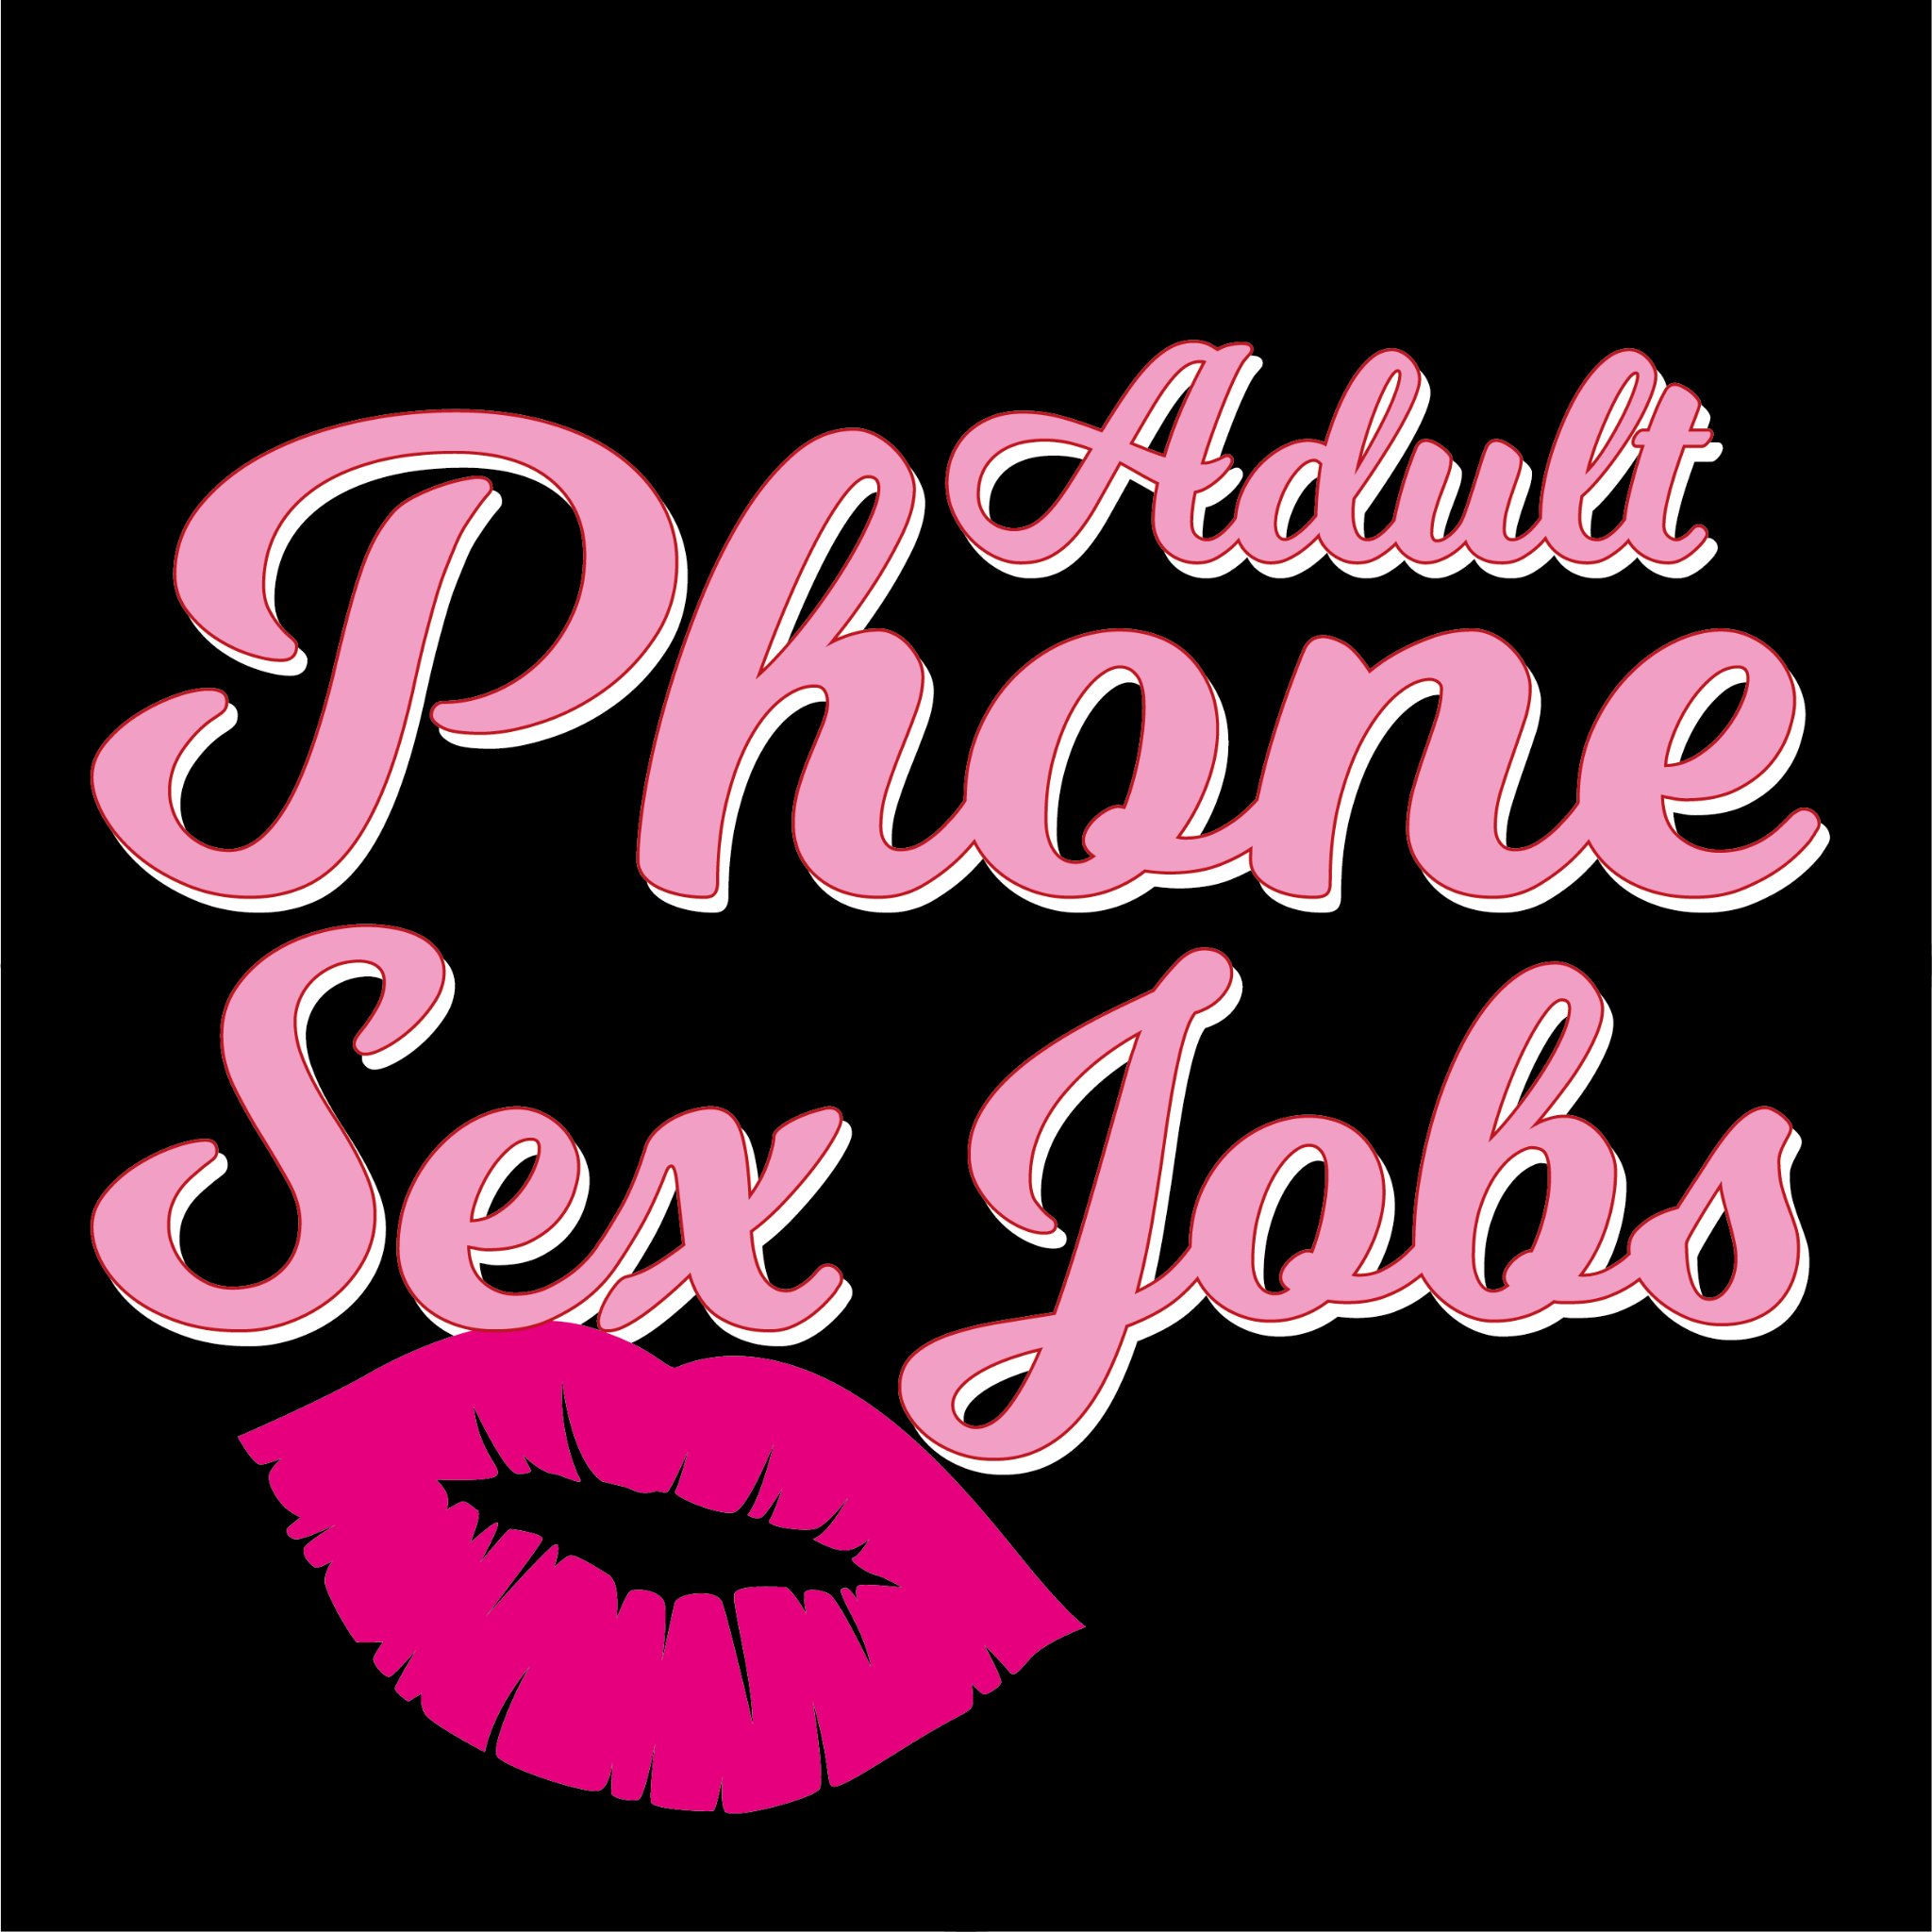 Become a phone sex operator today